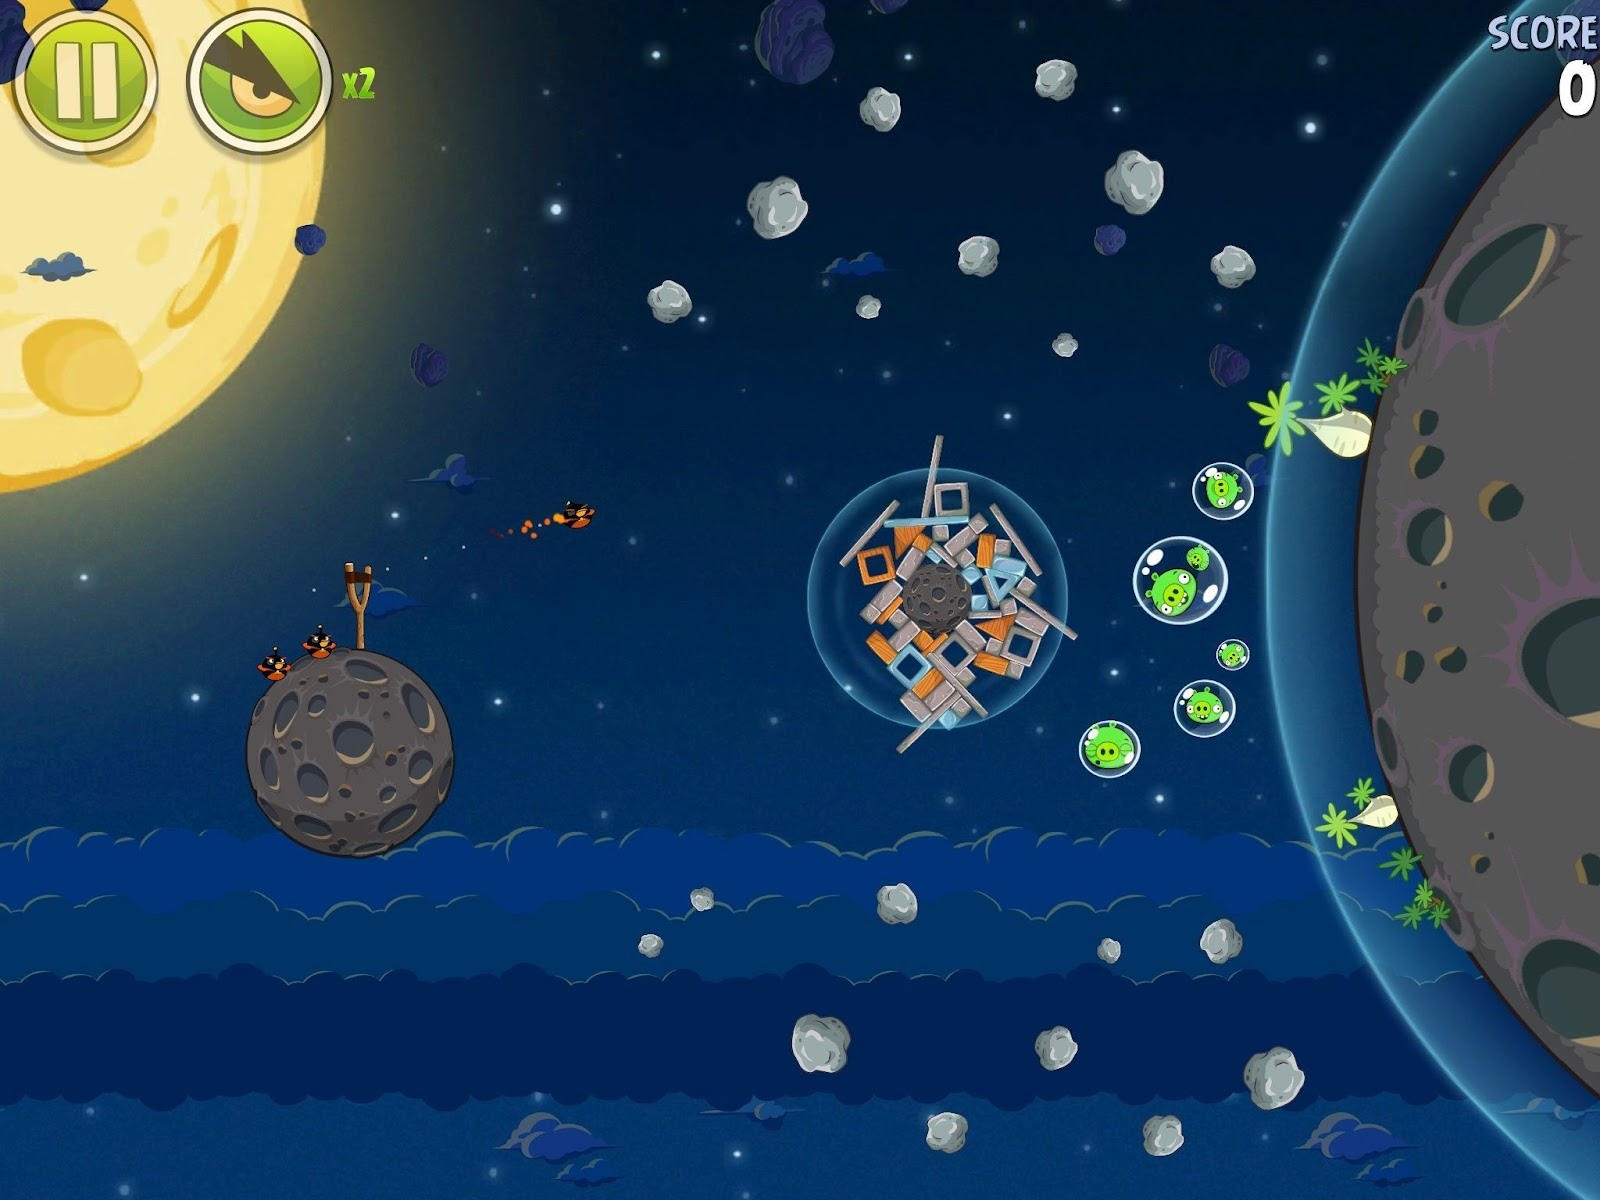 Download angry birds space game full version for free - Angry birds space gratuit ...